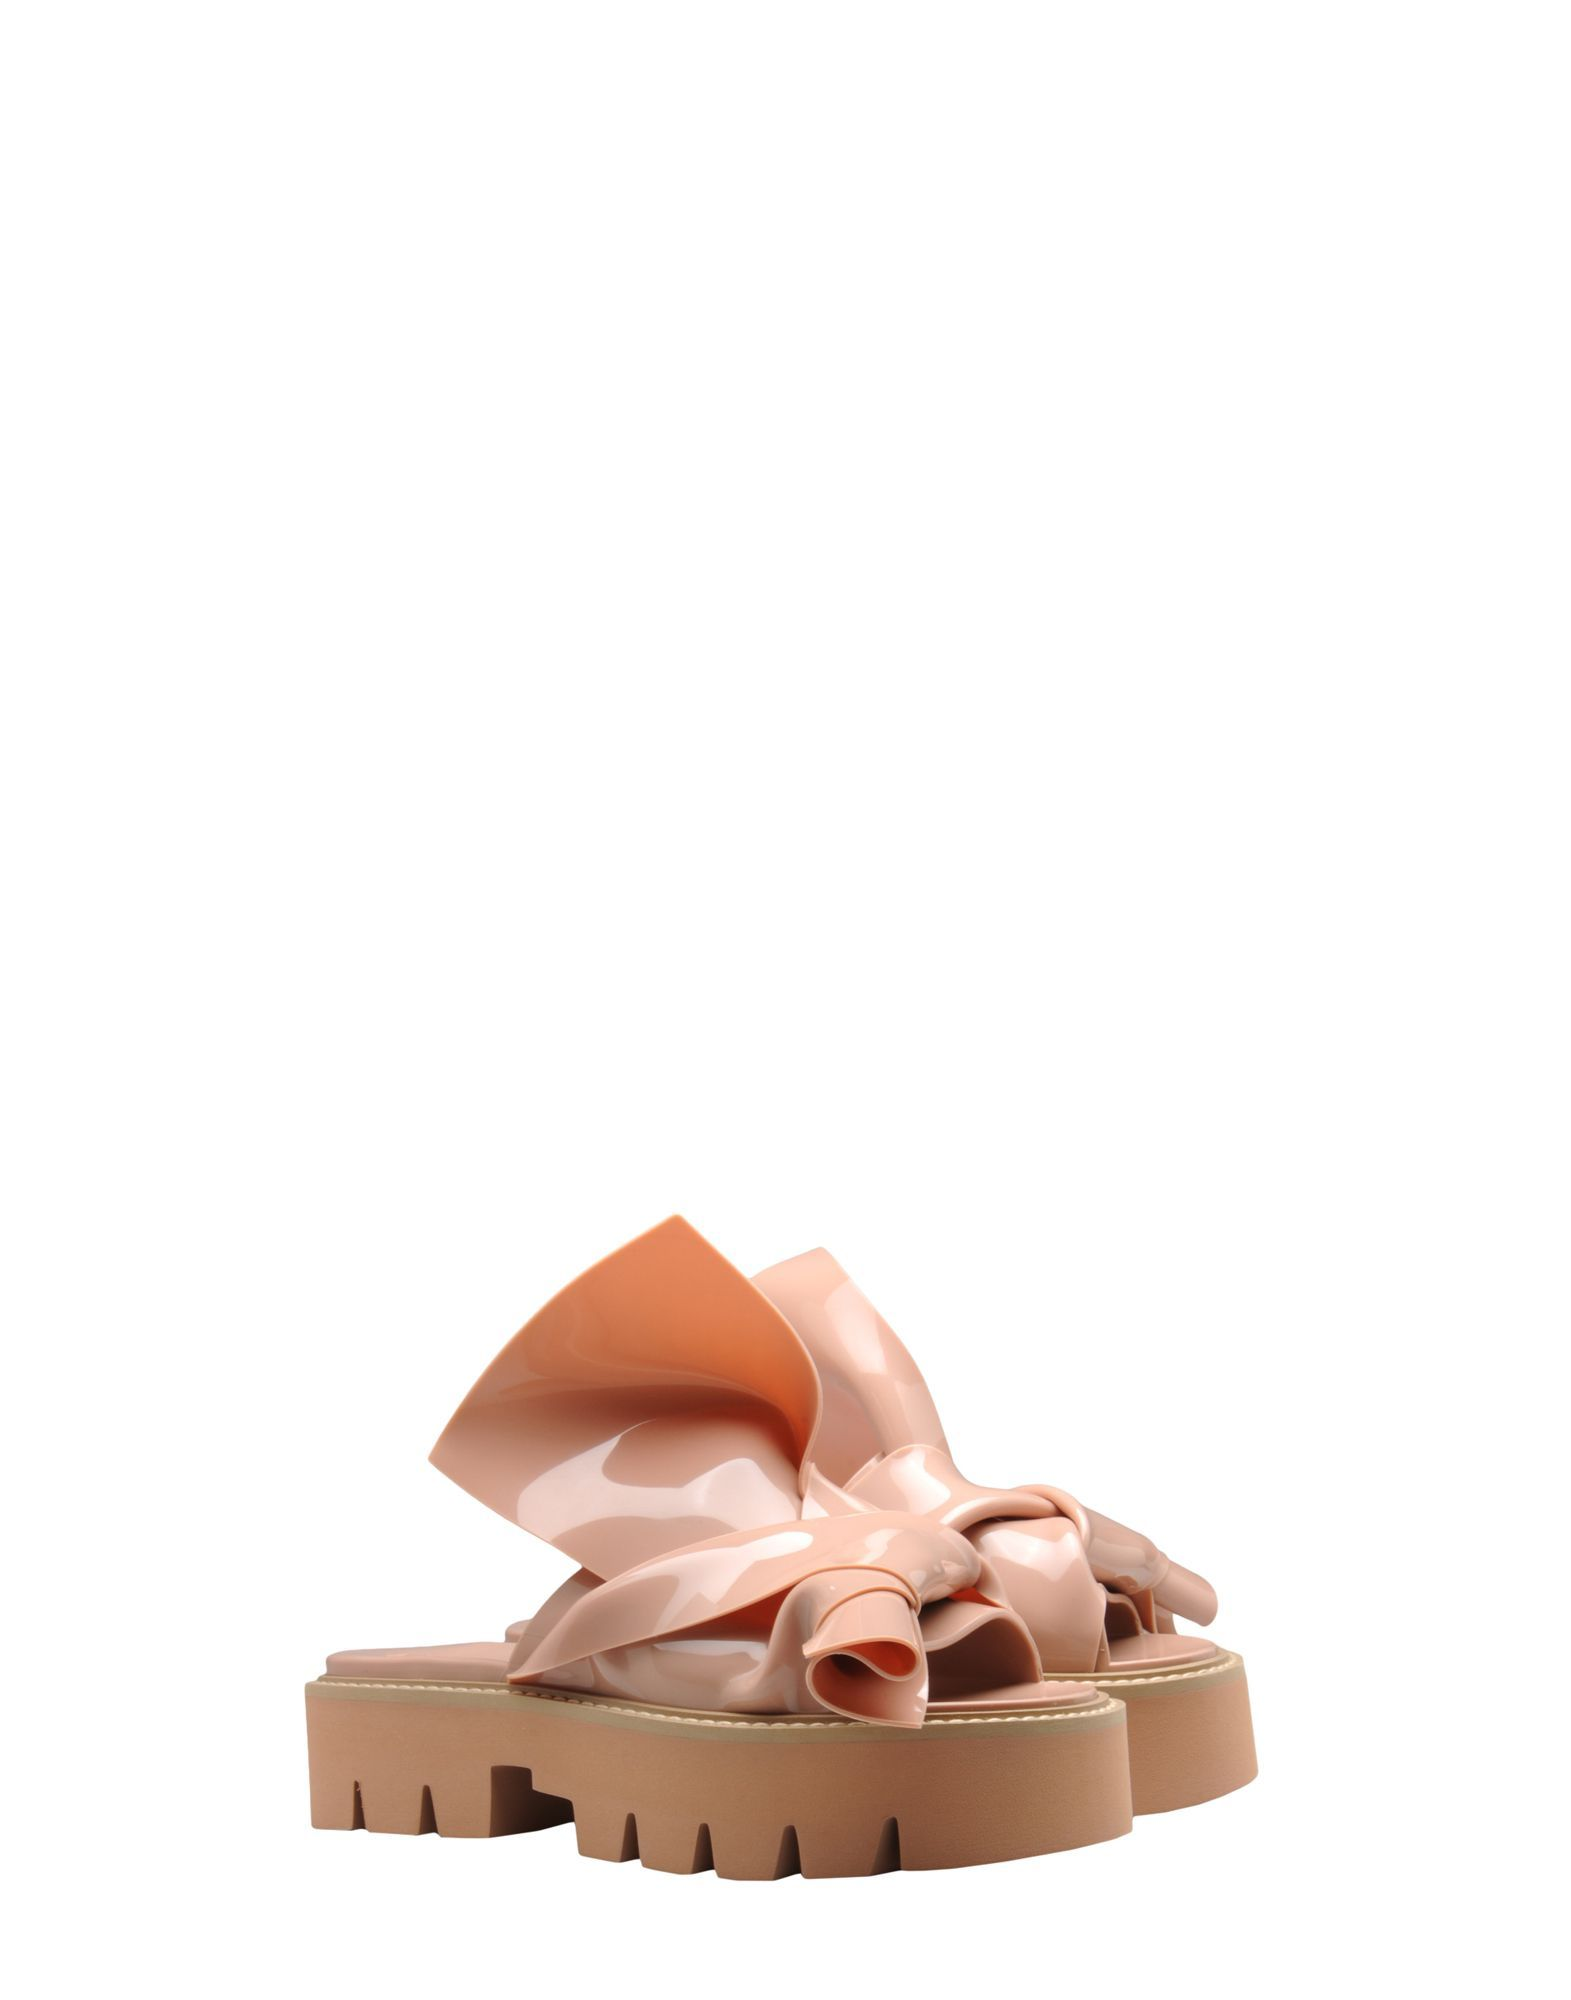 f2422ecb8a N°21 x Kartell knot sandal | From Hat to Shoe | Fall winter shoes ...